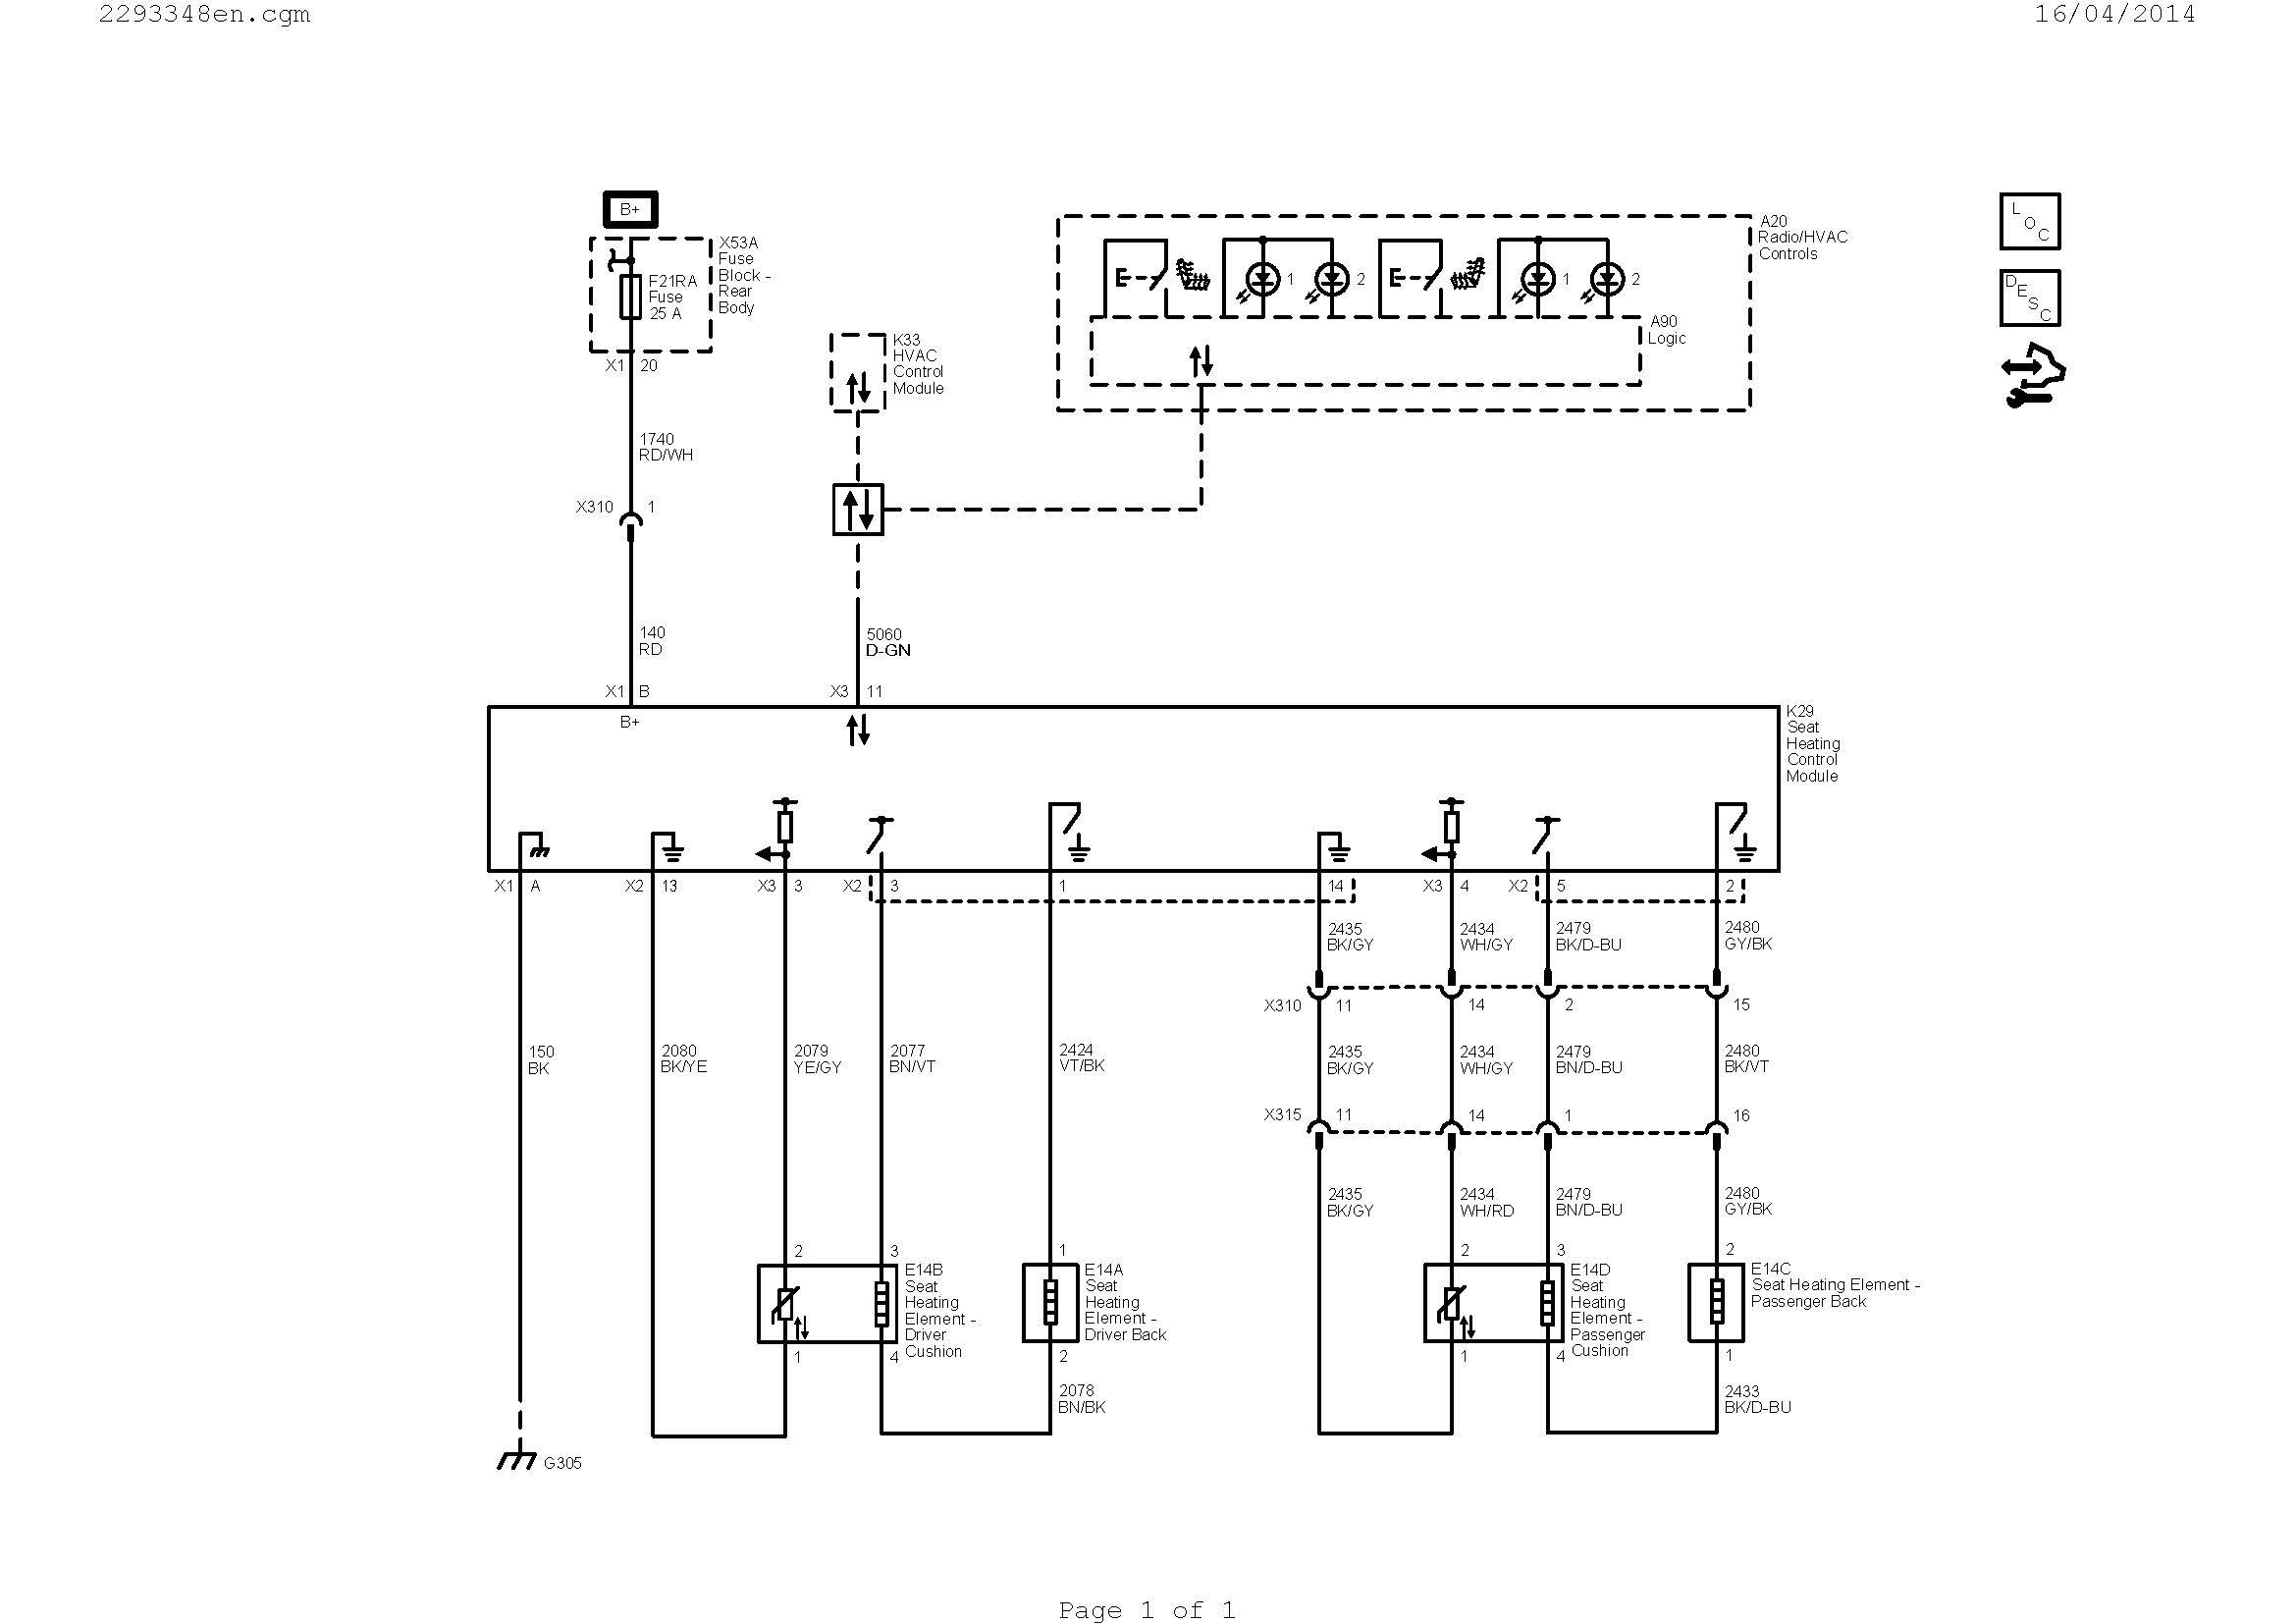 mei bill acceptor wiring diagram Collection-automotive ac diagram Download Wiring Diagrams For Central Heating Refrence Hvac Diagram Best Hvac Diagram 8-k